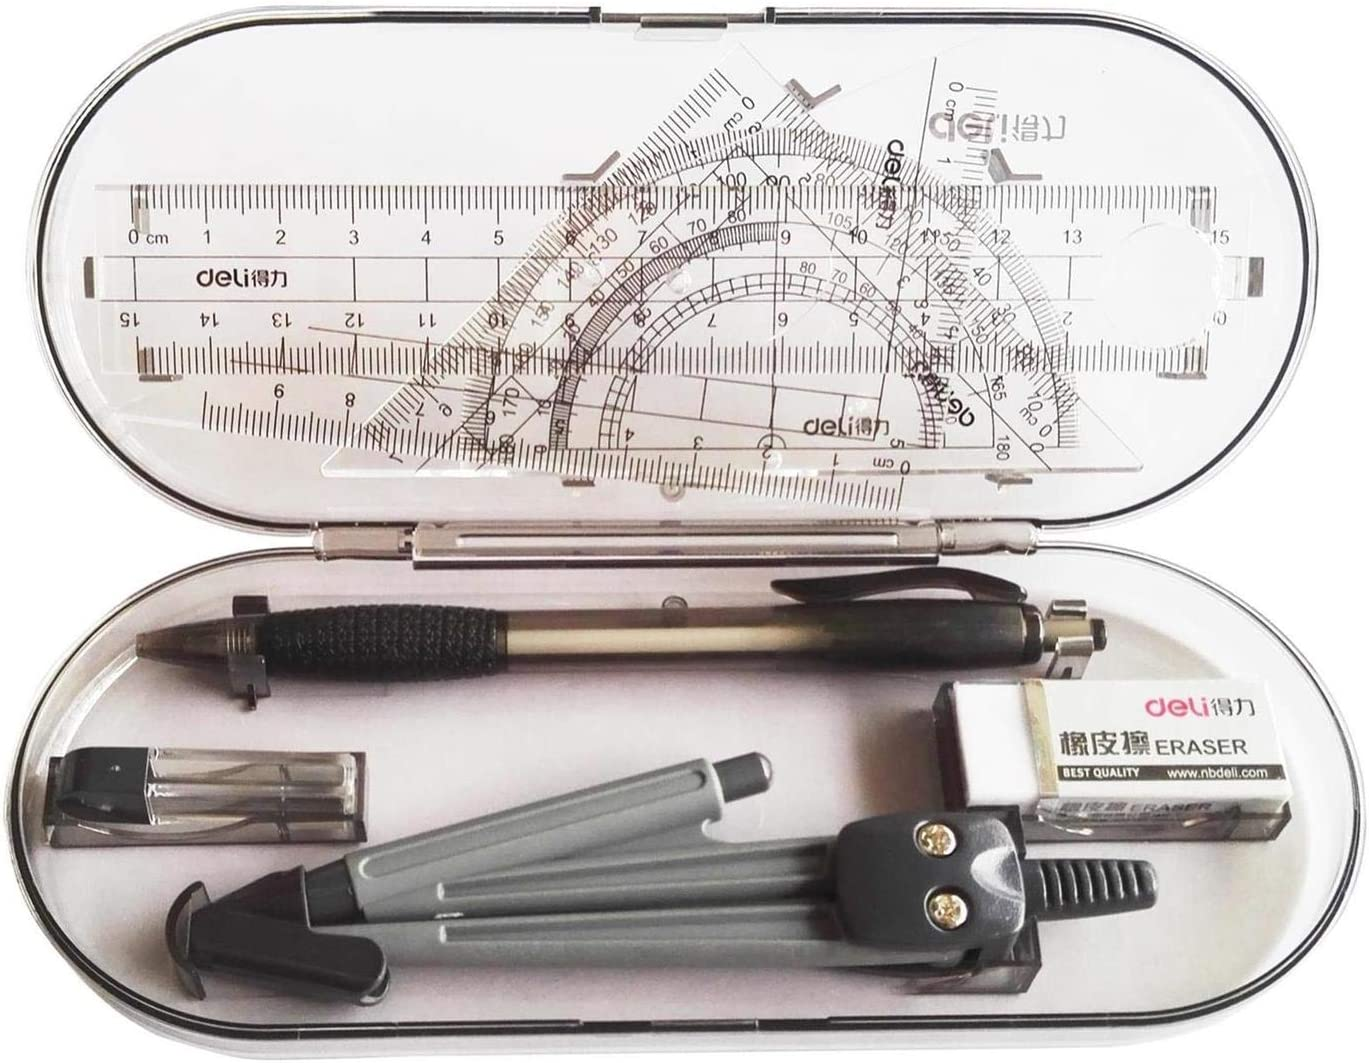 New 8 piece music stationary kits pencil cases mechanical pencils erasers rulers